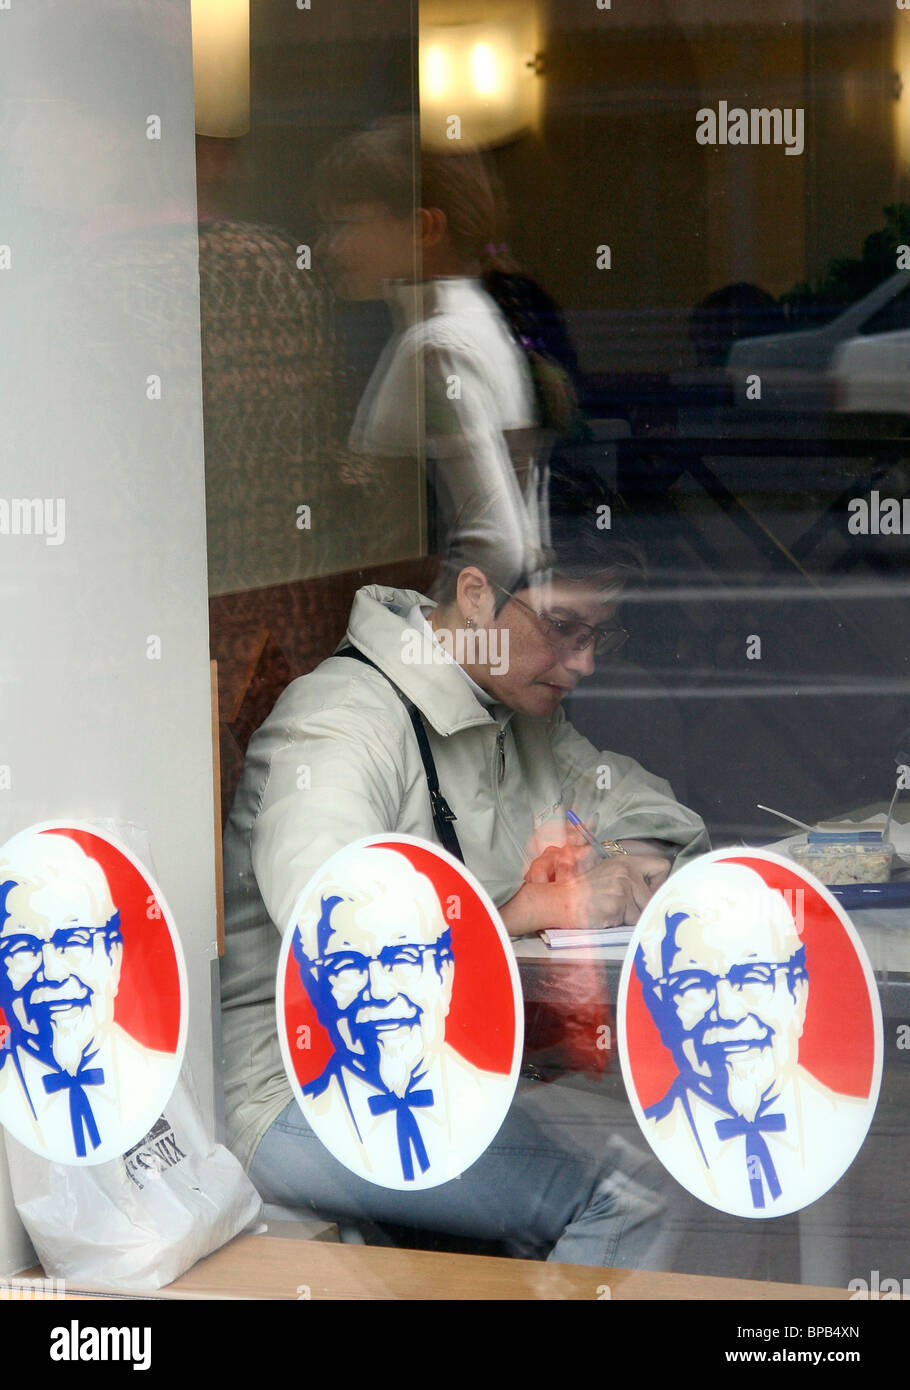 USA's Yum! Brands and Russia's Rostik's sign business alliance - Stock Image